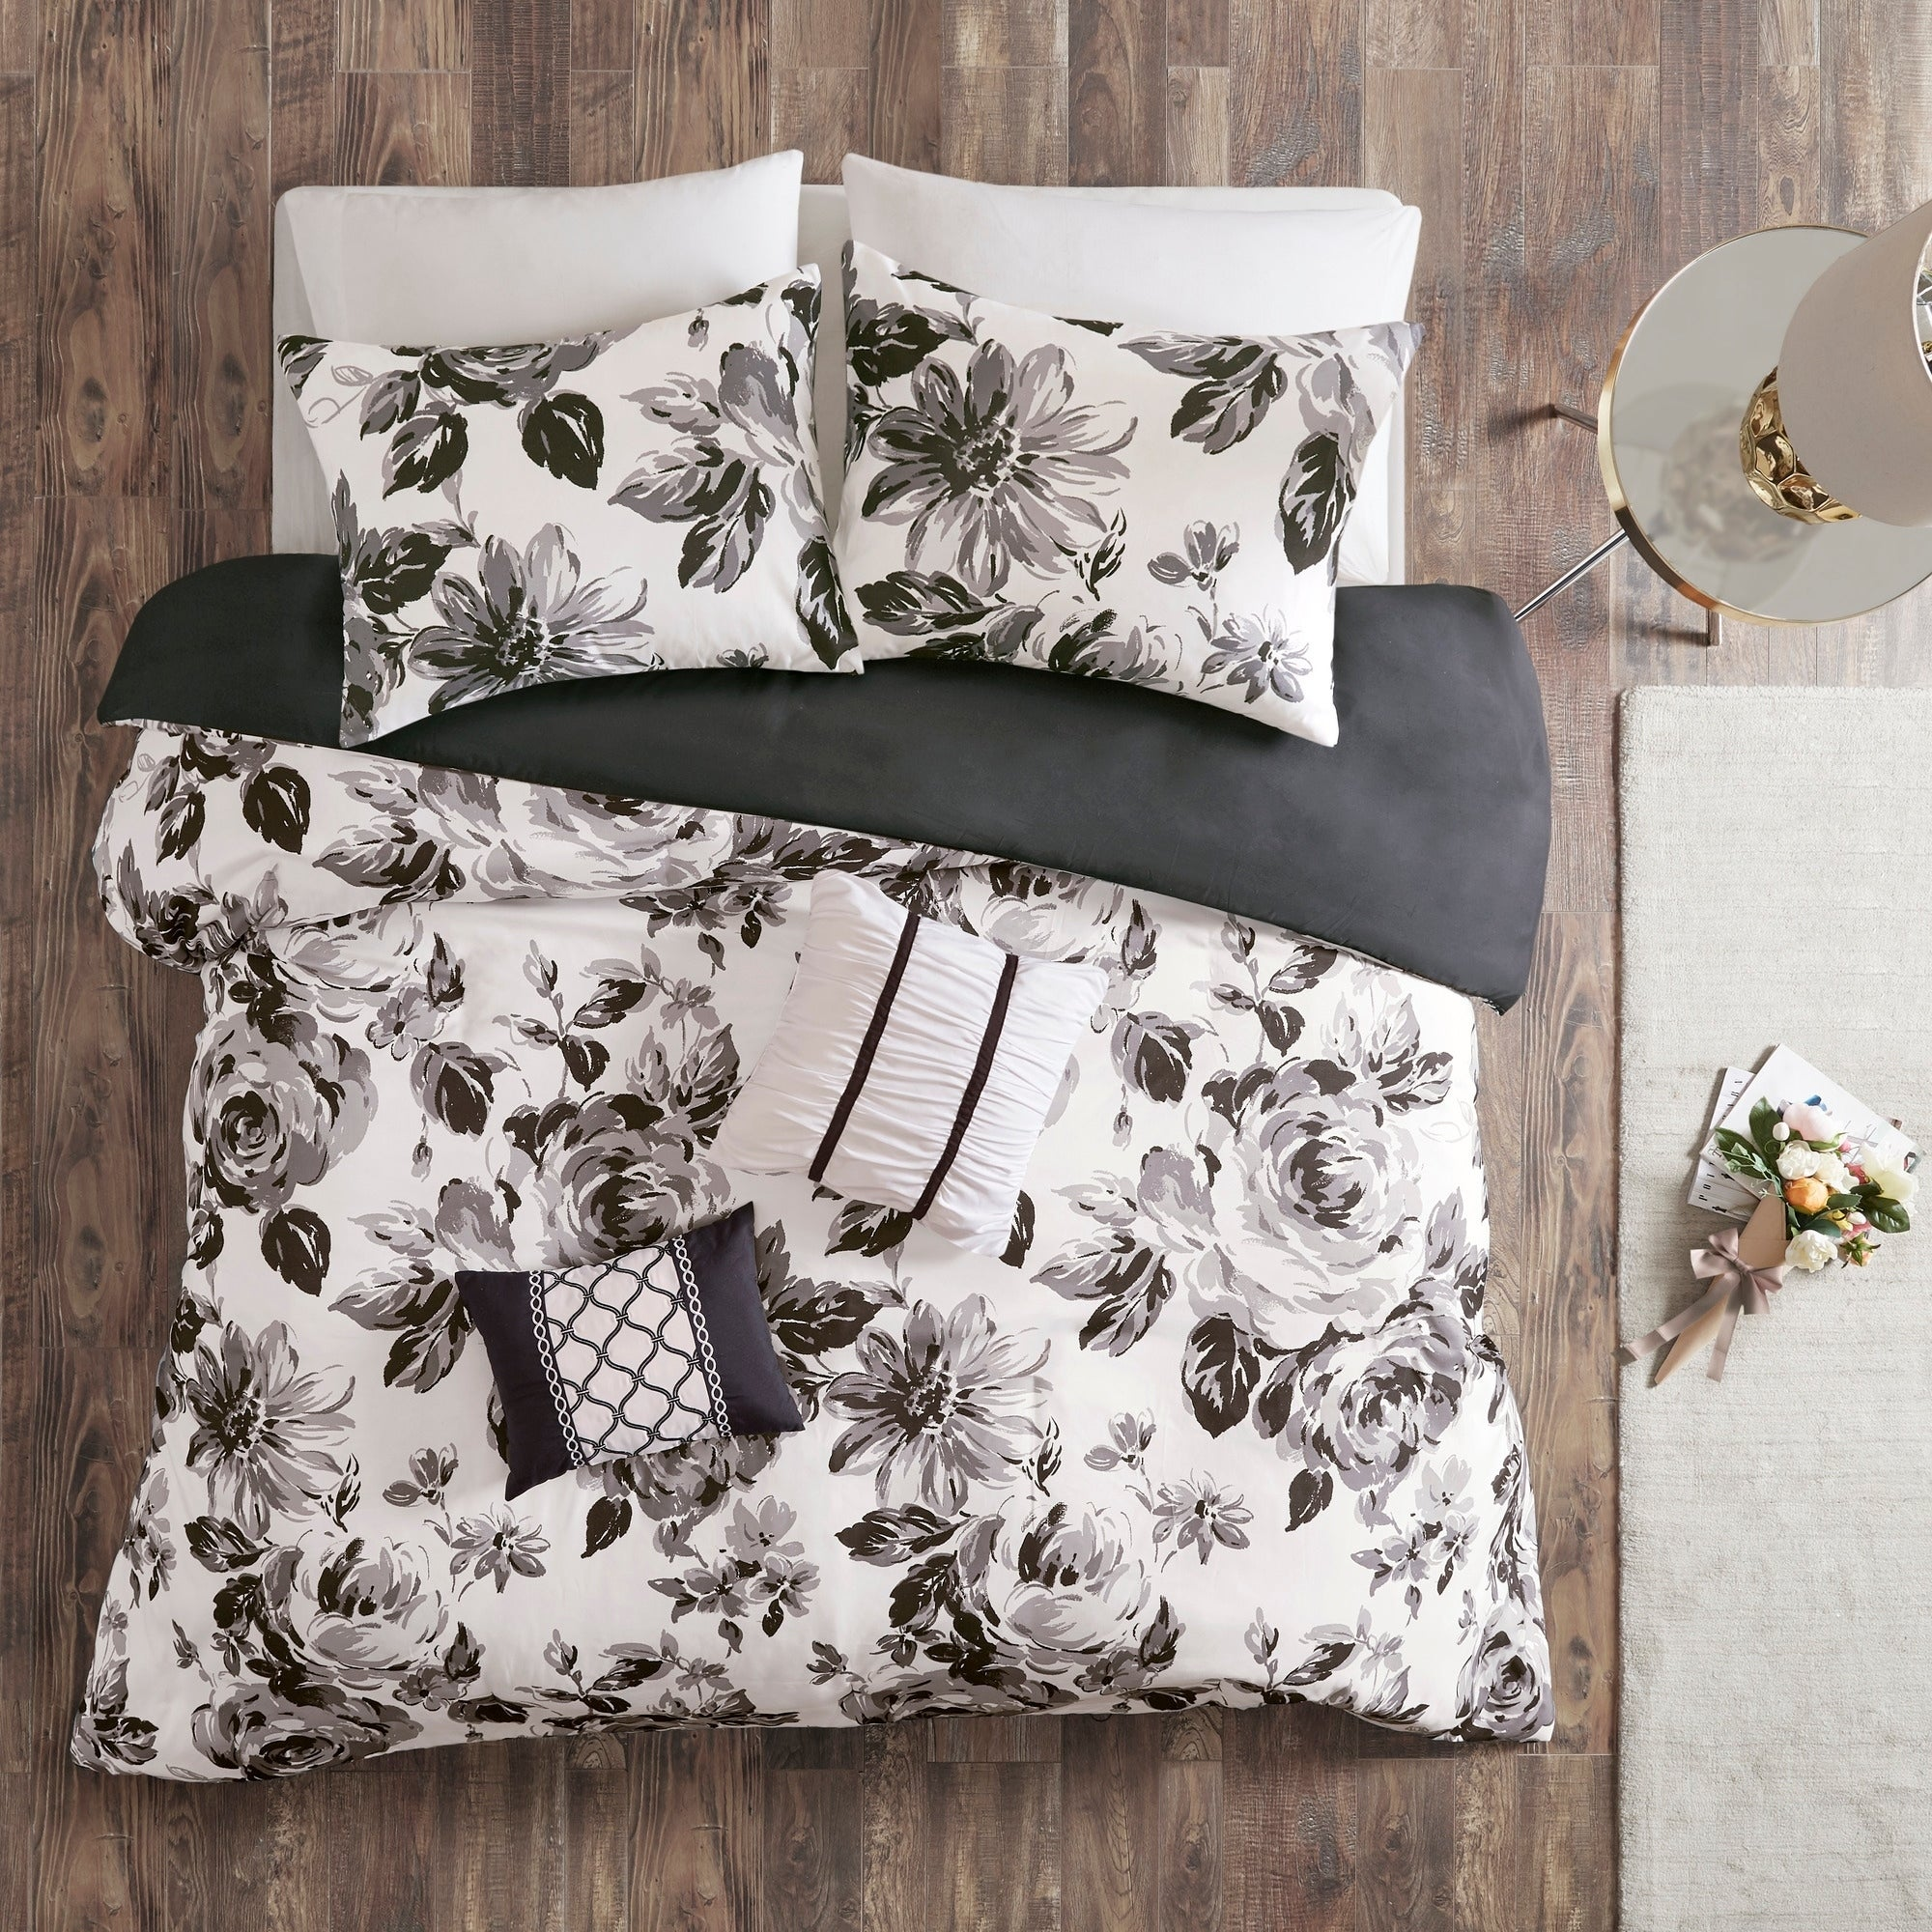 Shop Intelligent Design Renee Black White Floral Print Duvet